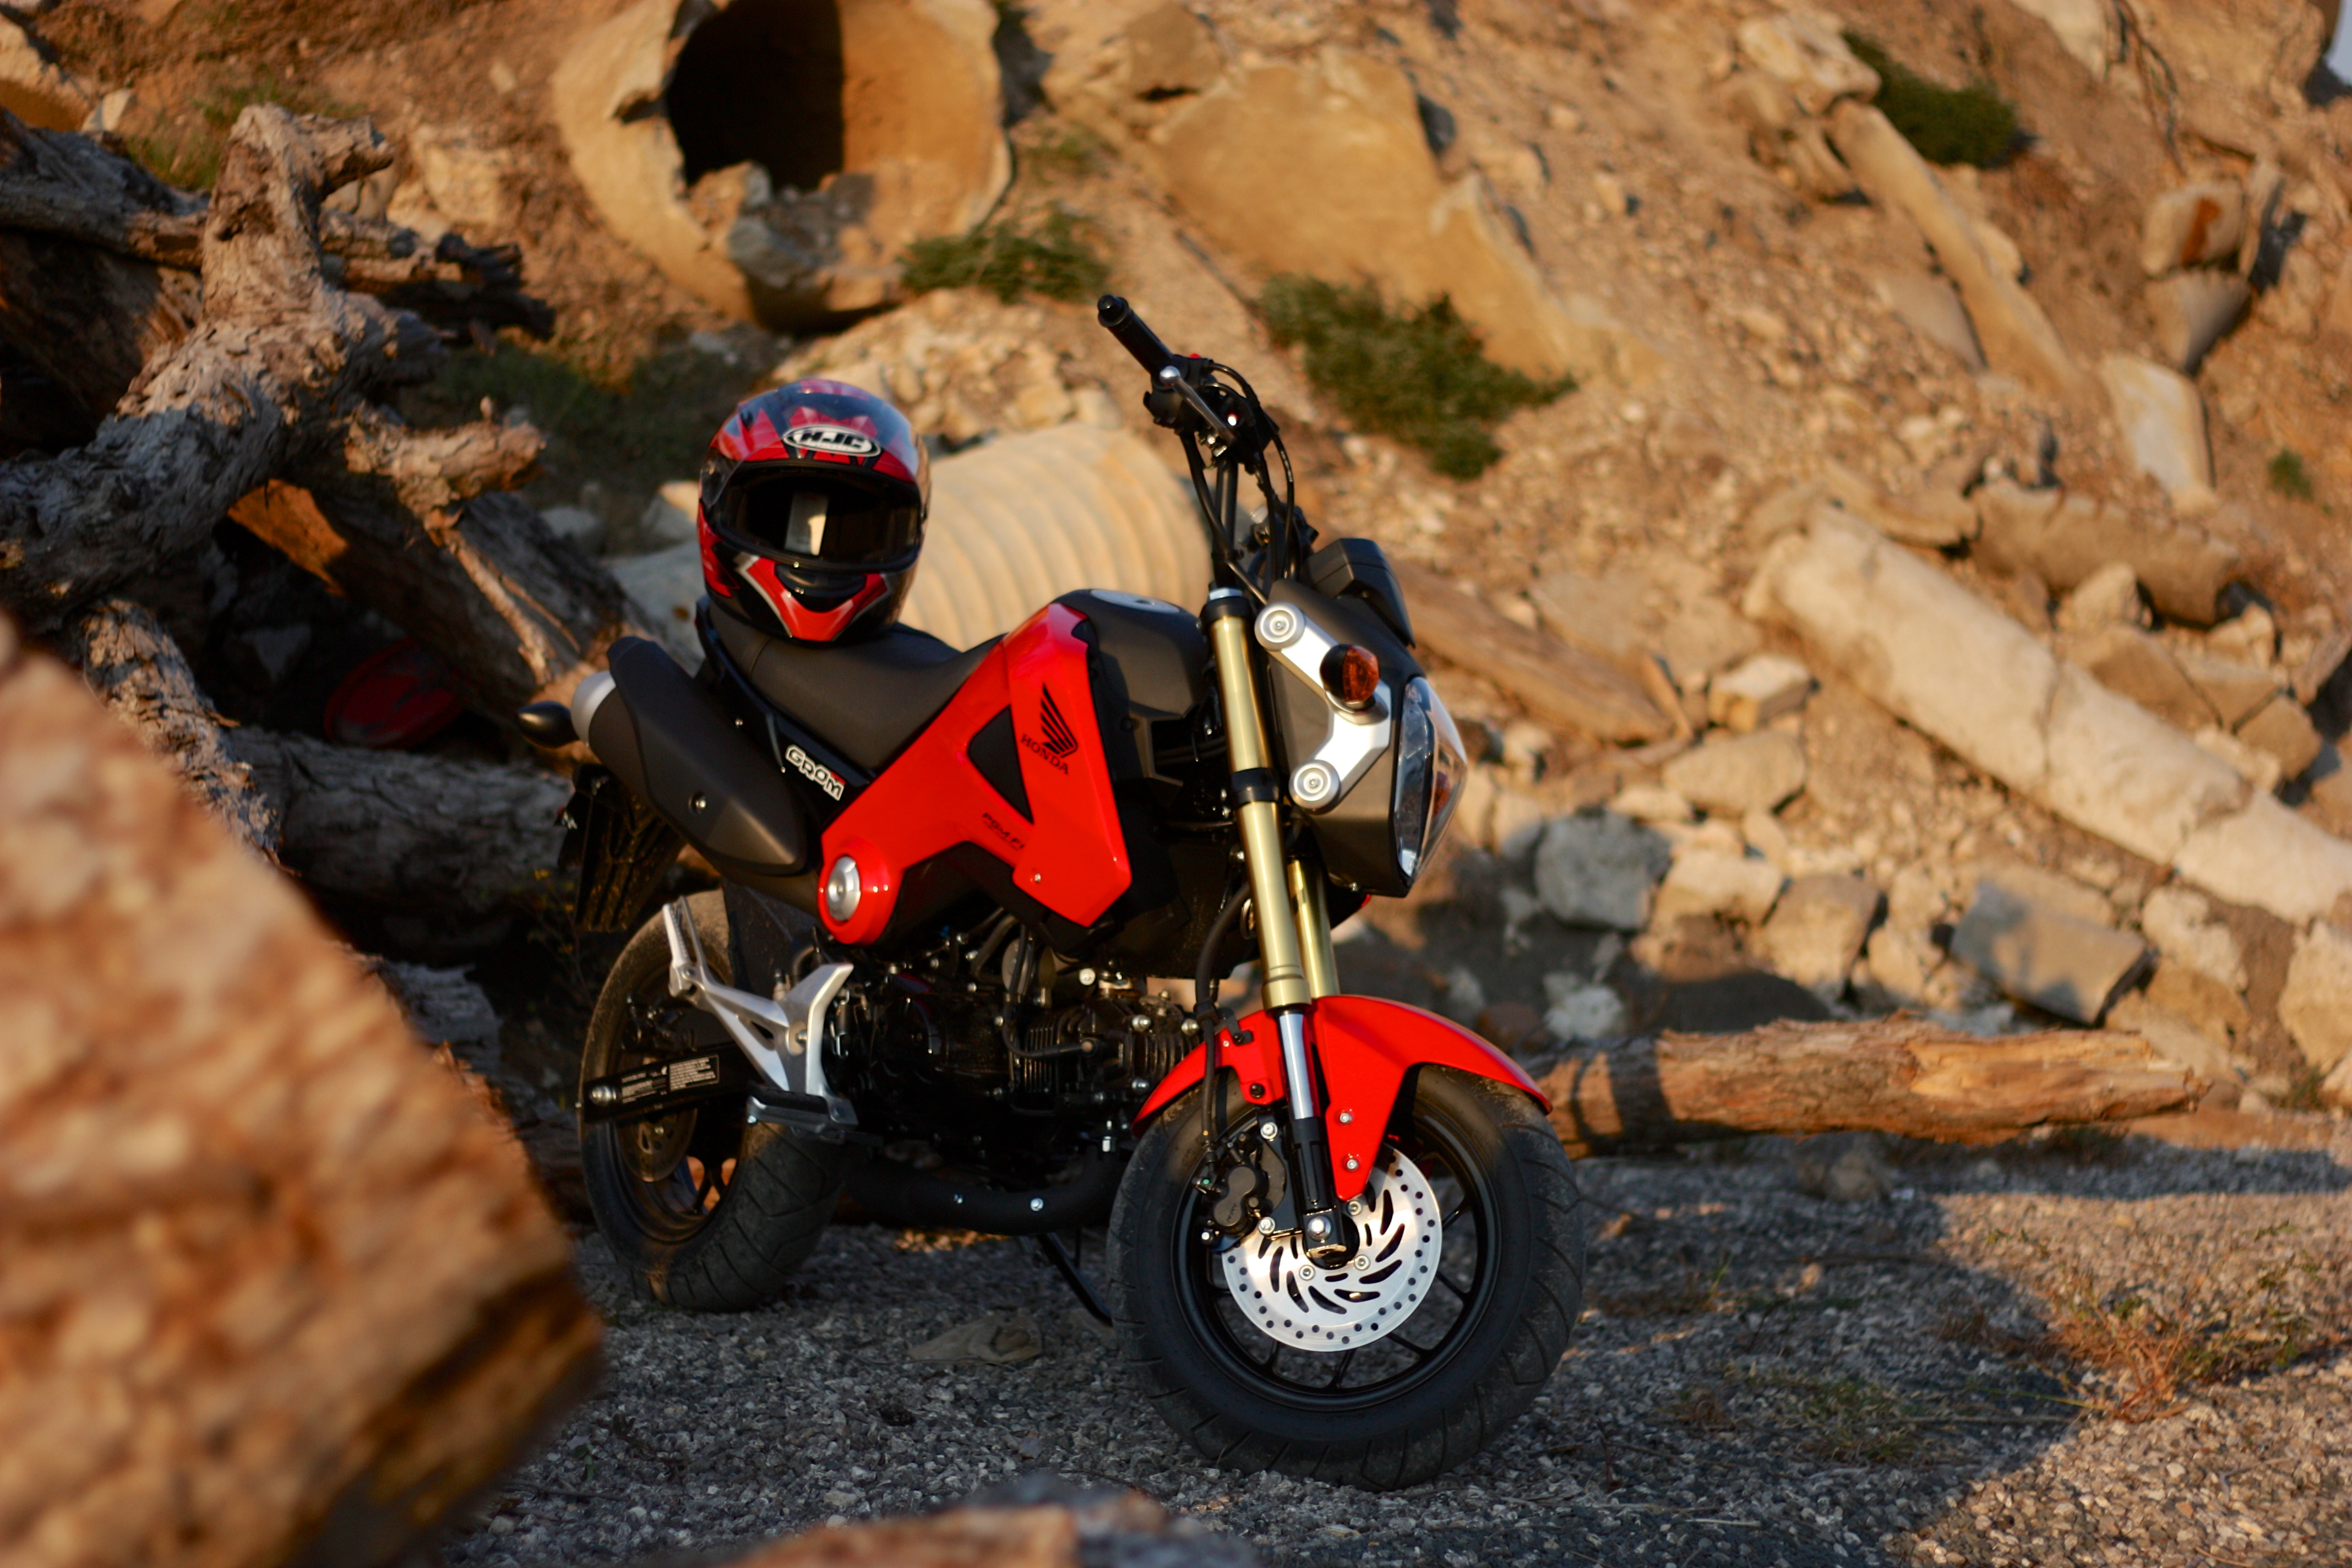 Honda Grom Friday The 13th Attachments